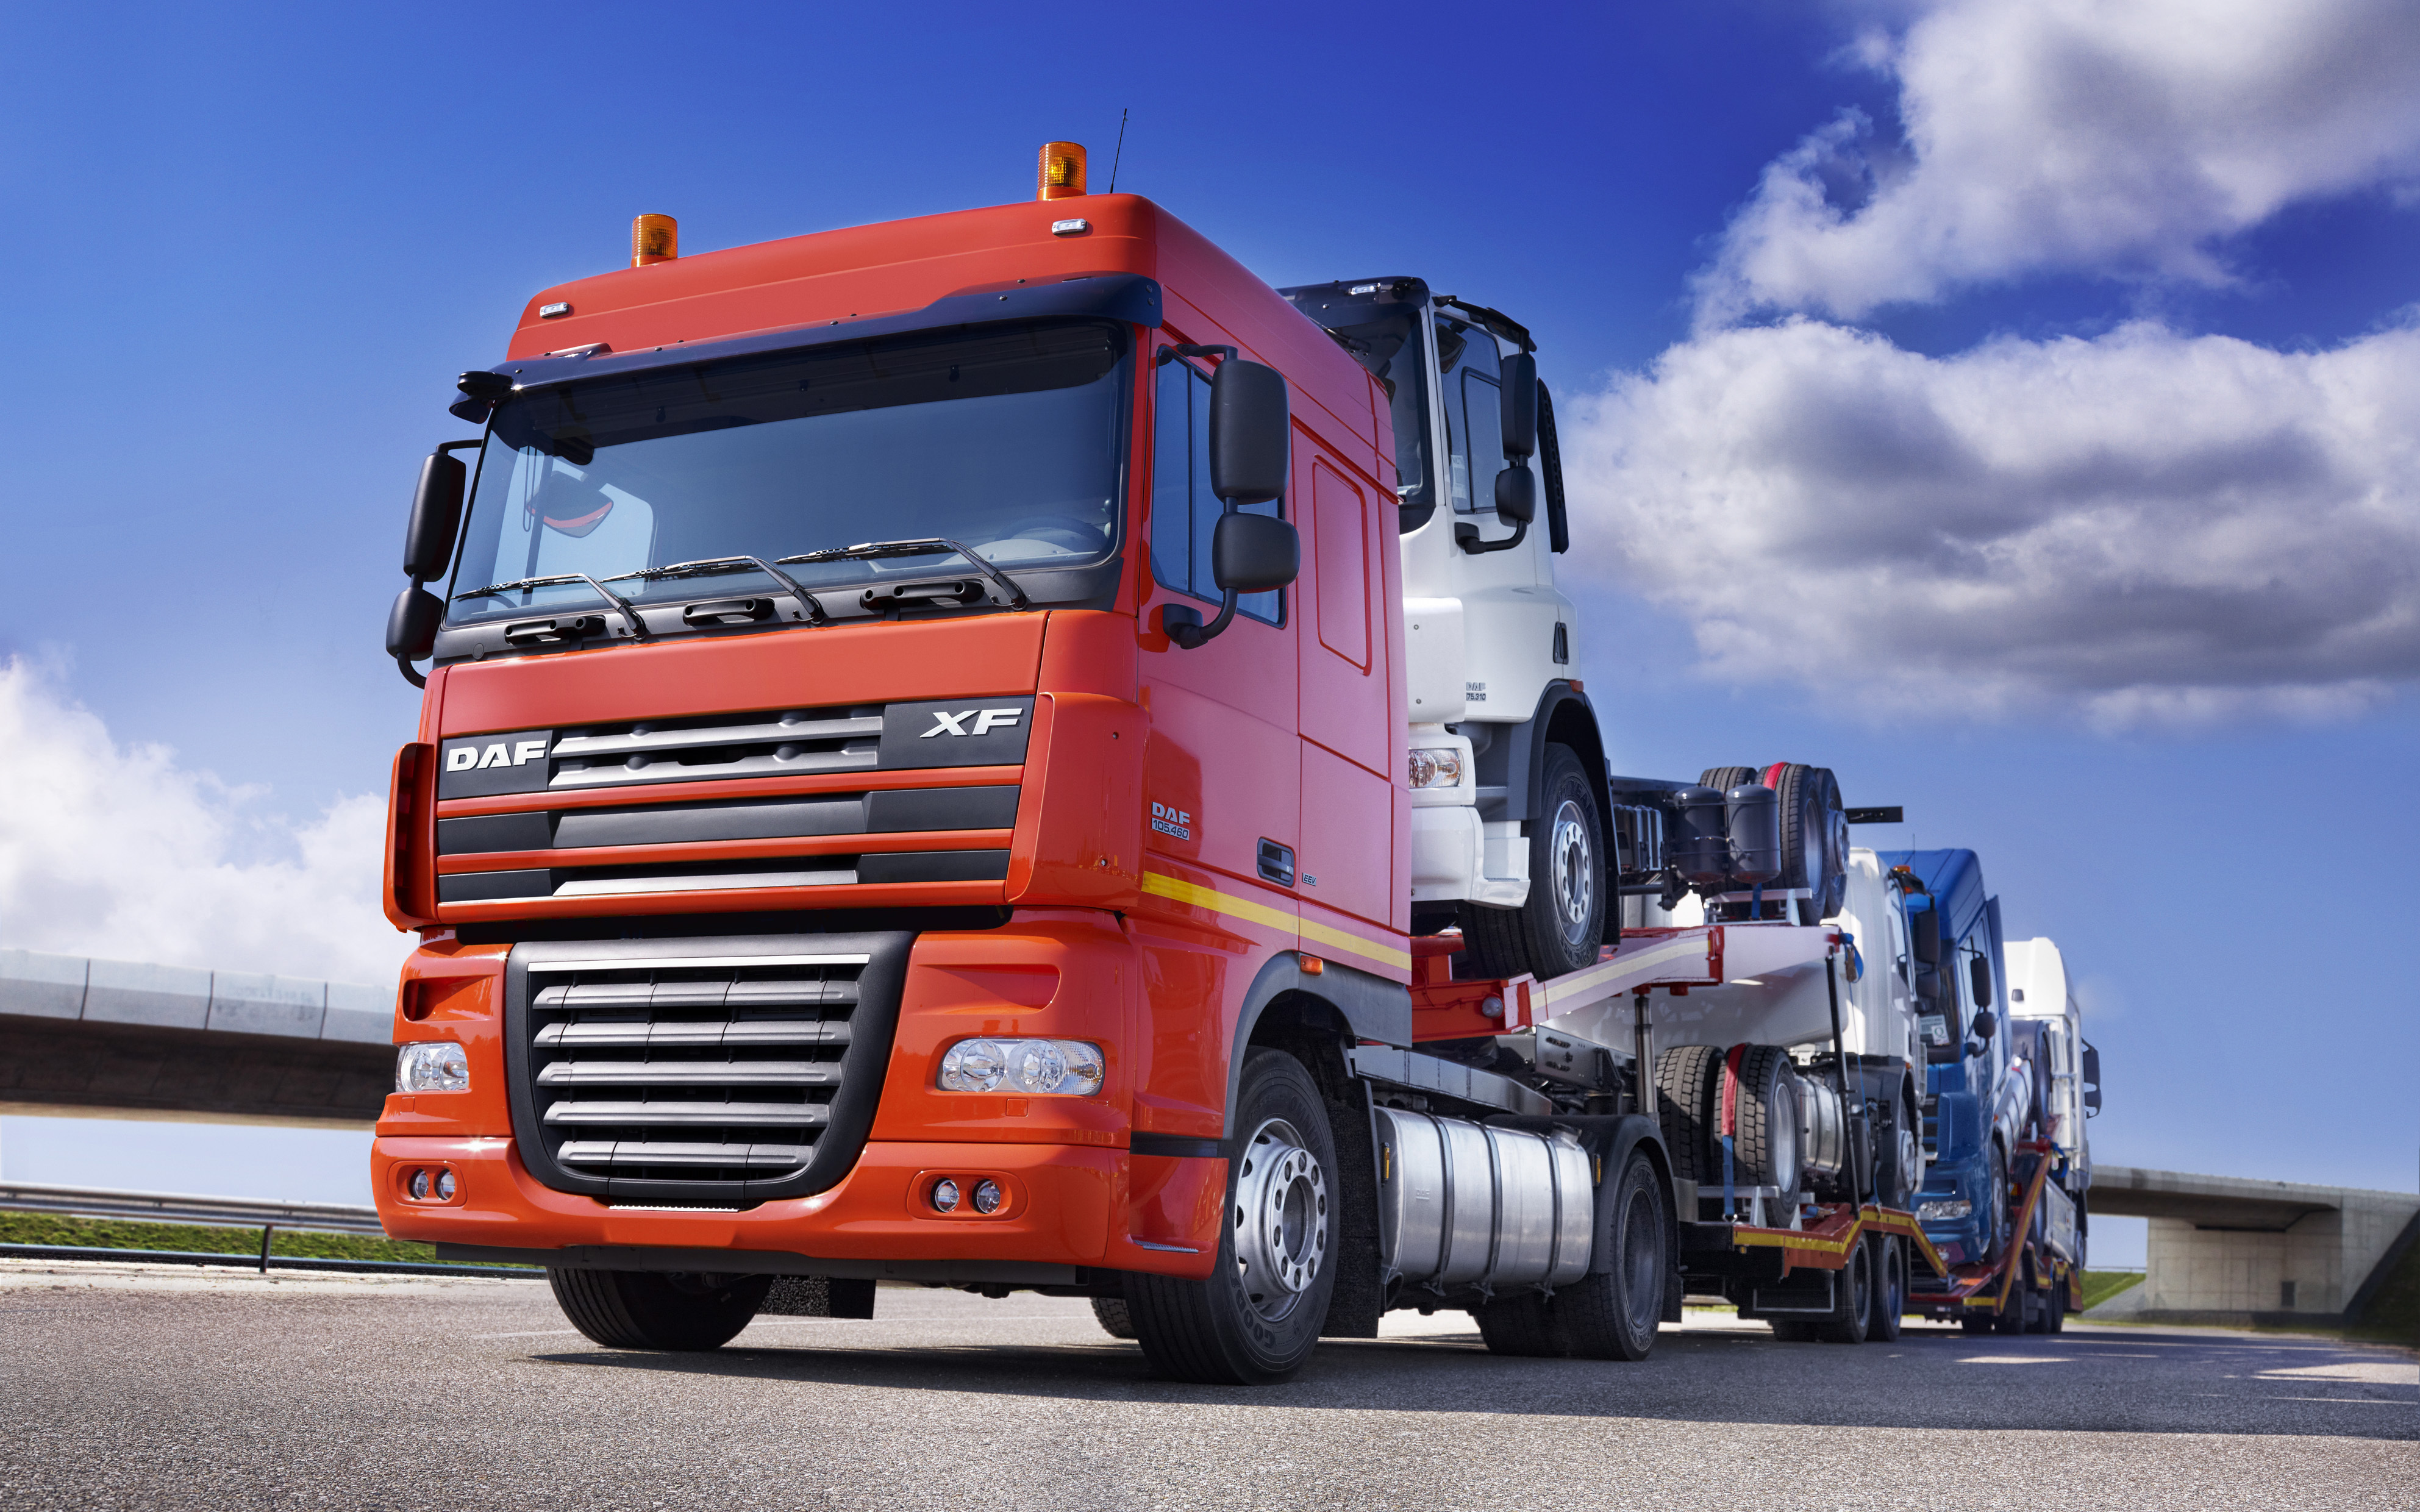 Semi Truck Wallpaper Images amp Pictures   Becuo 3969x2480